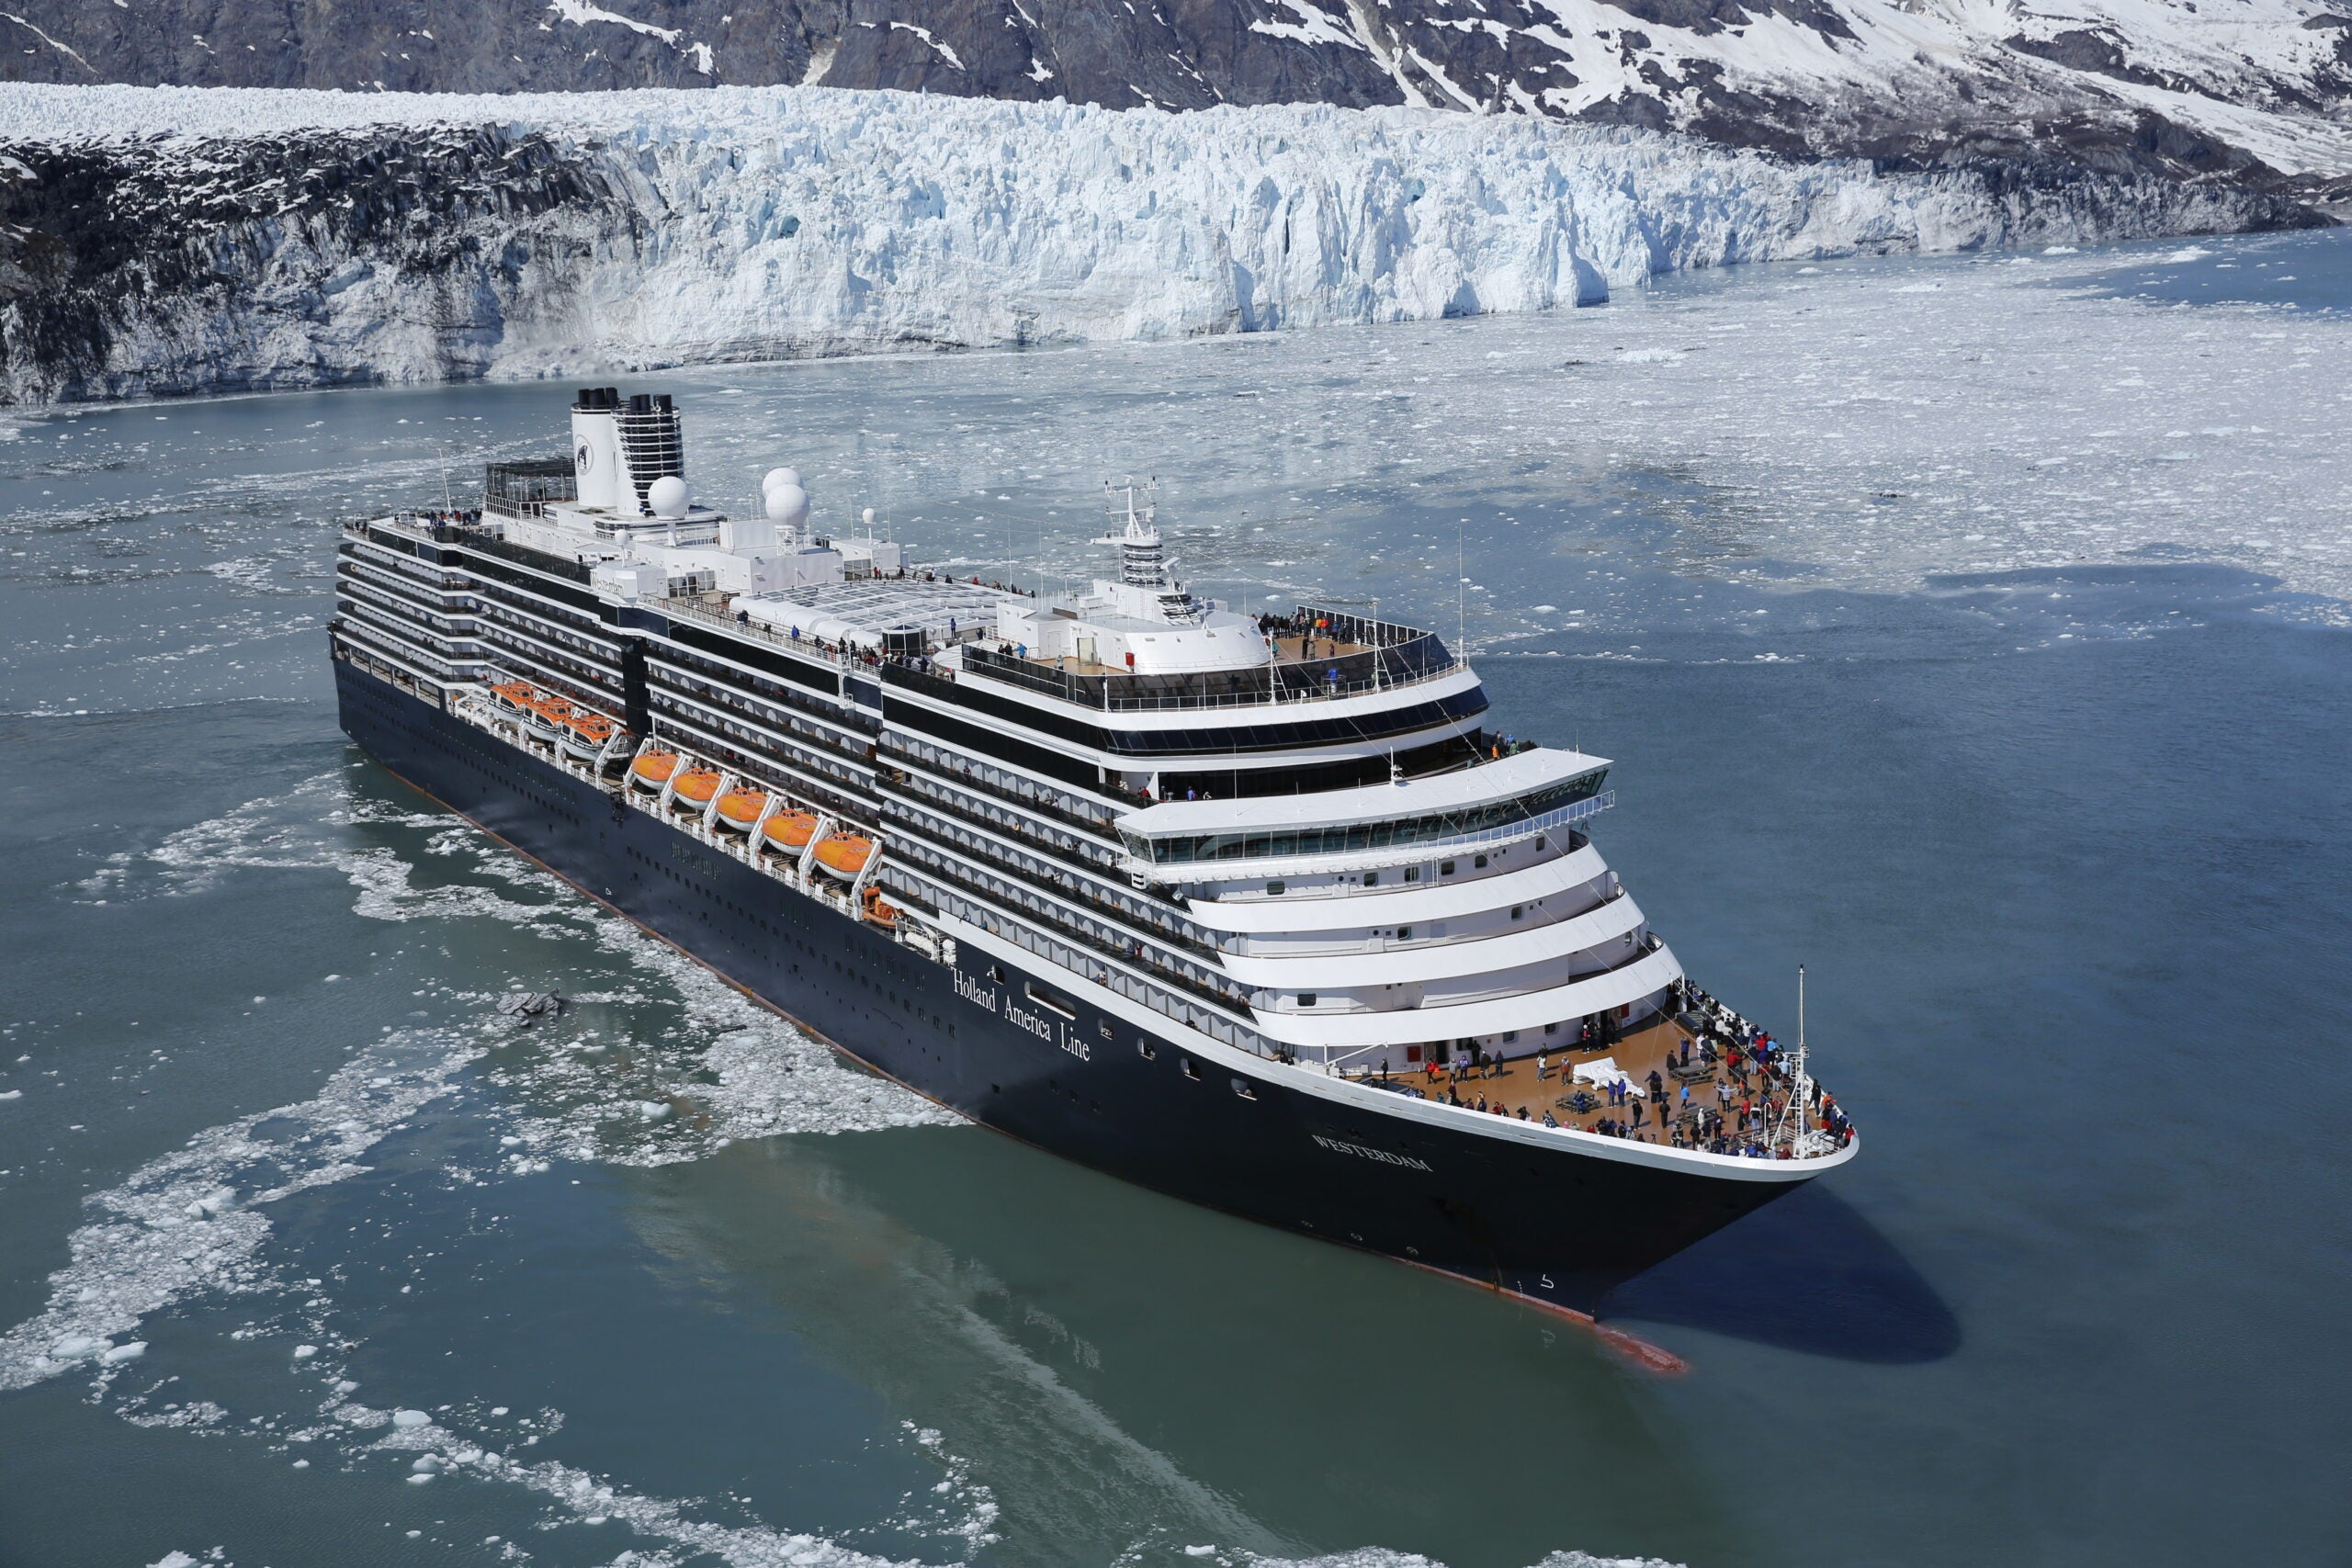 The 5 best destinations you can visit on a Holland America ship - The Points Guy